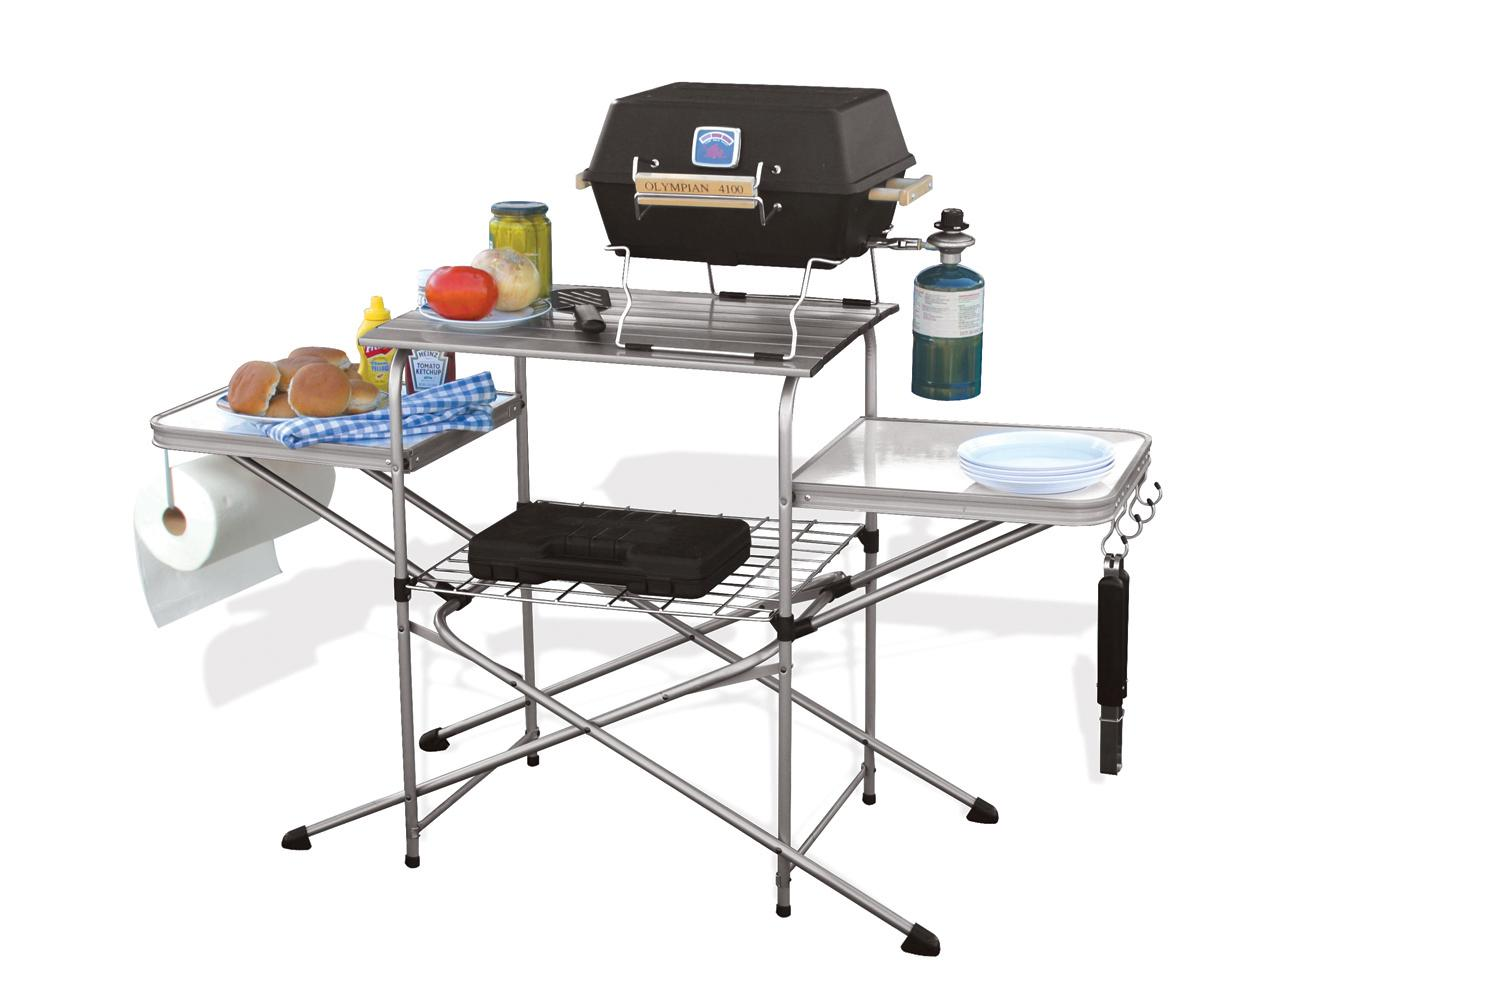 Deluxe Grilling Table Portable Outdoor Camping Bbq Grill